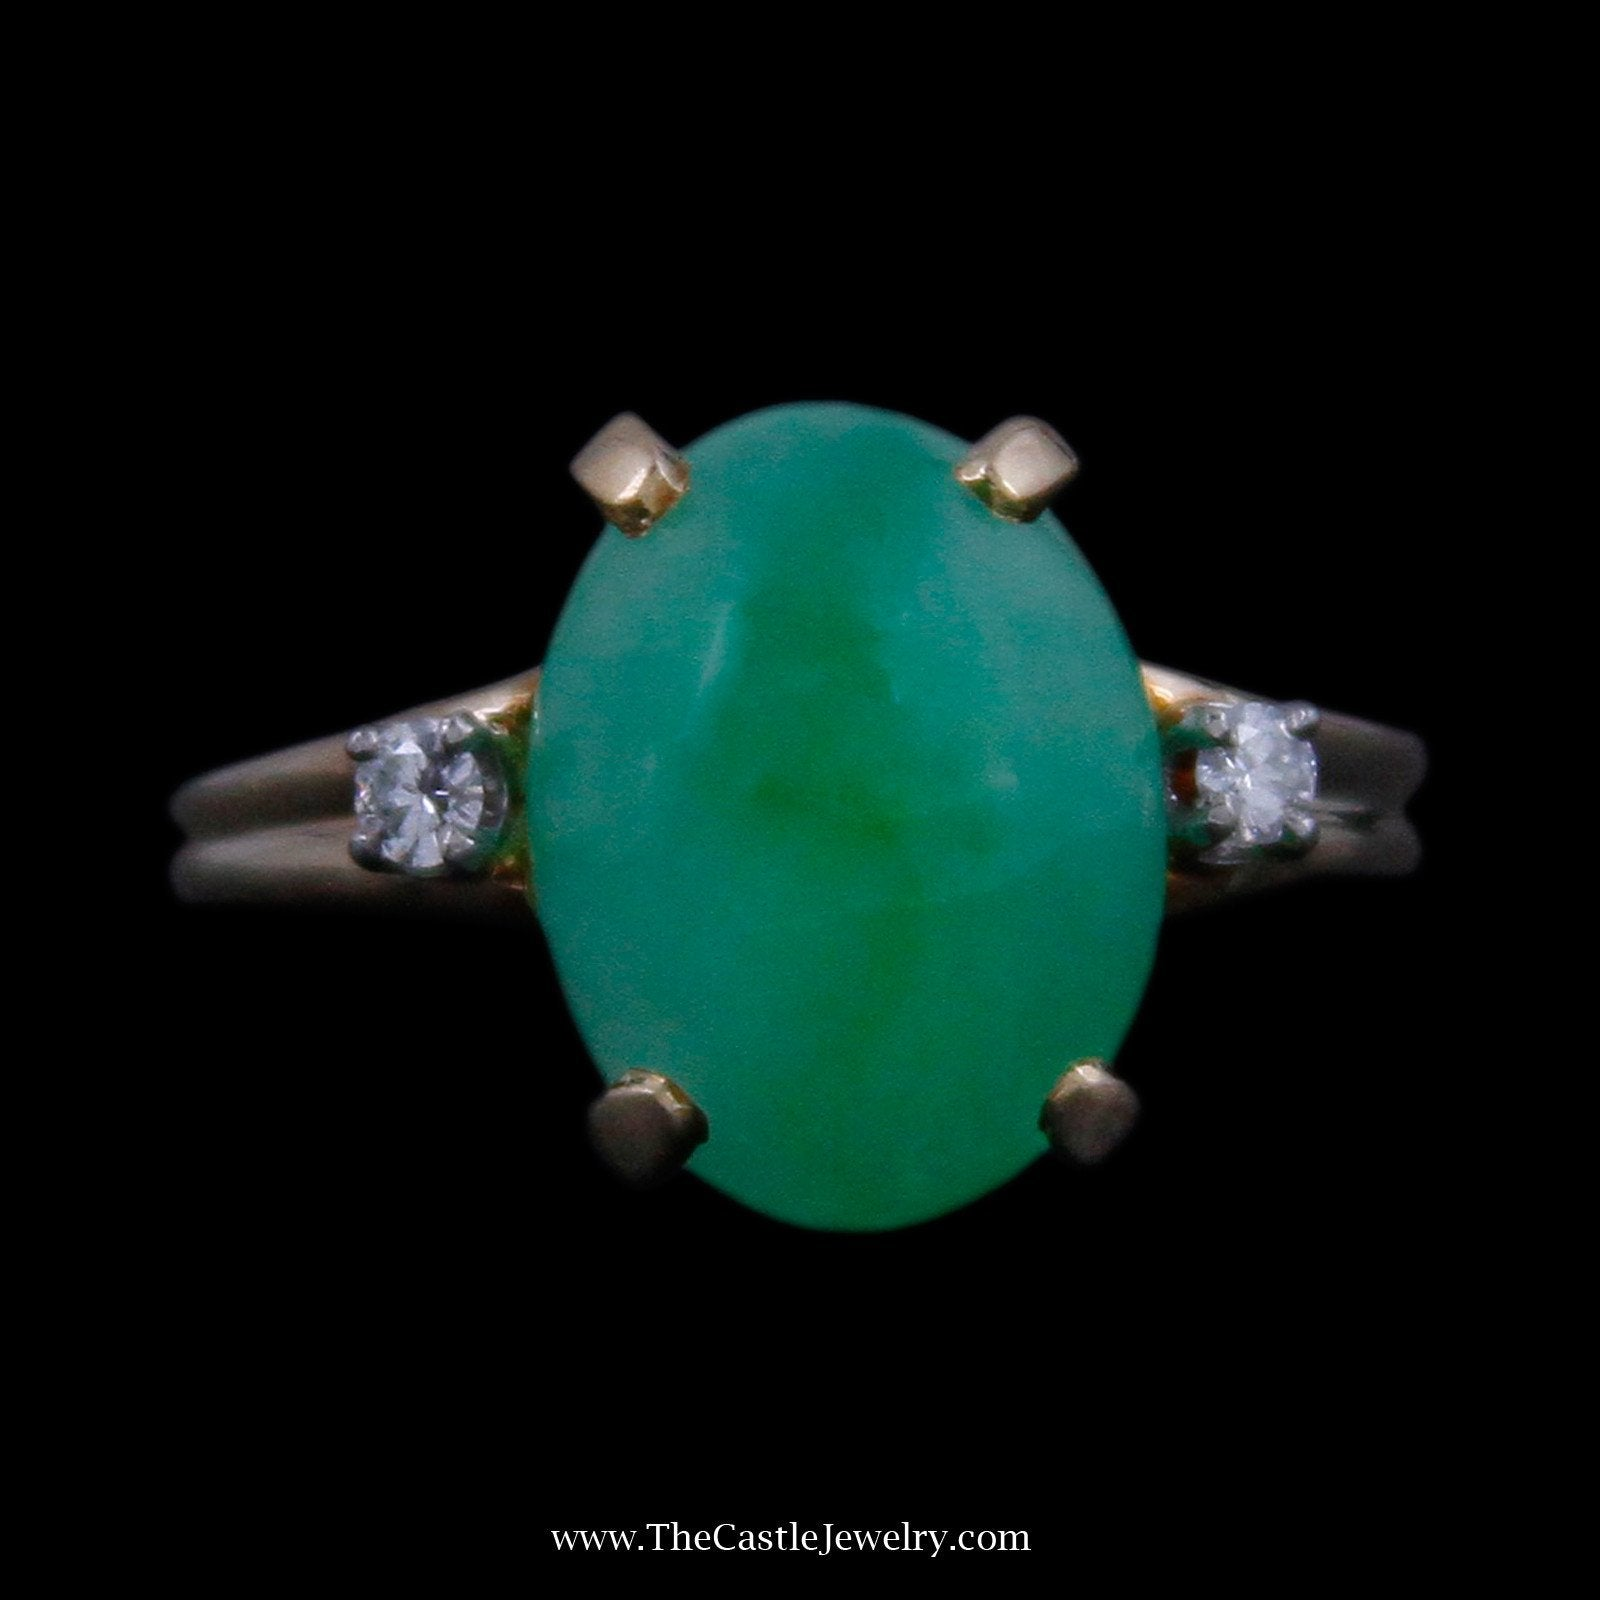 Beautiful Cabochon Jade with Round Brilliant Cut Diamond Accents in Yellow Gold